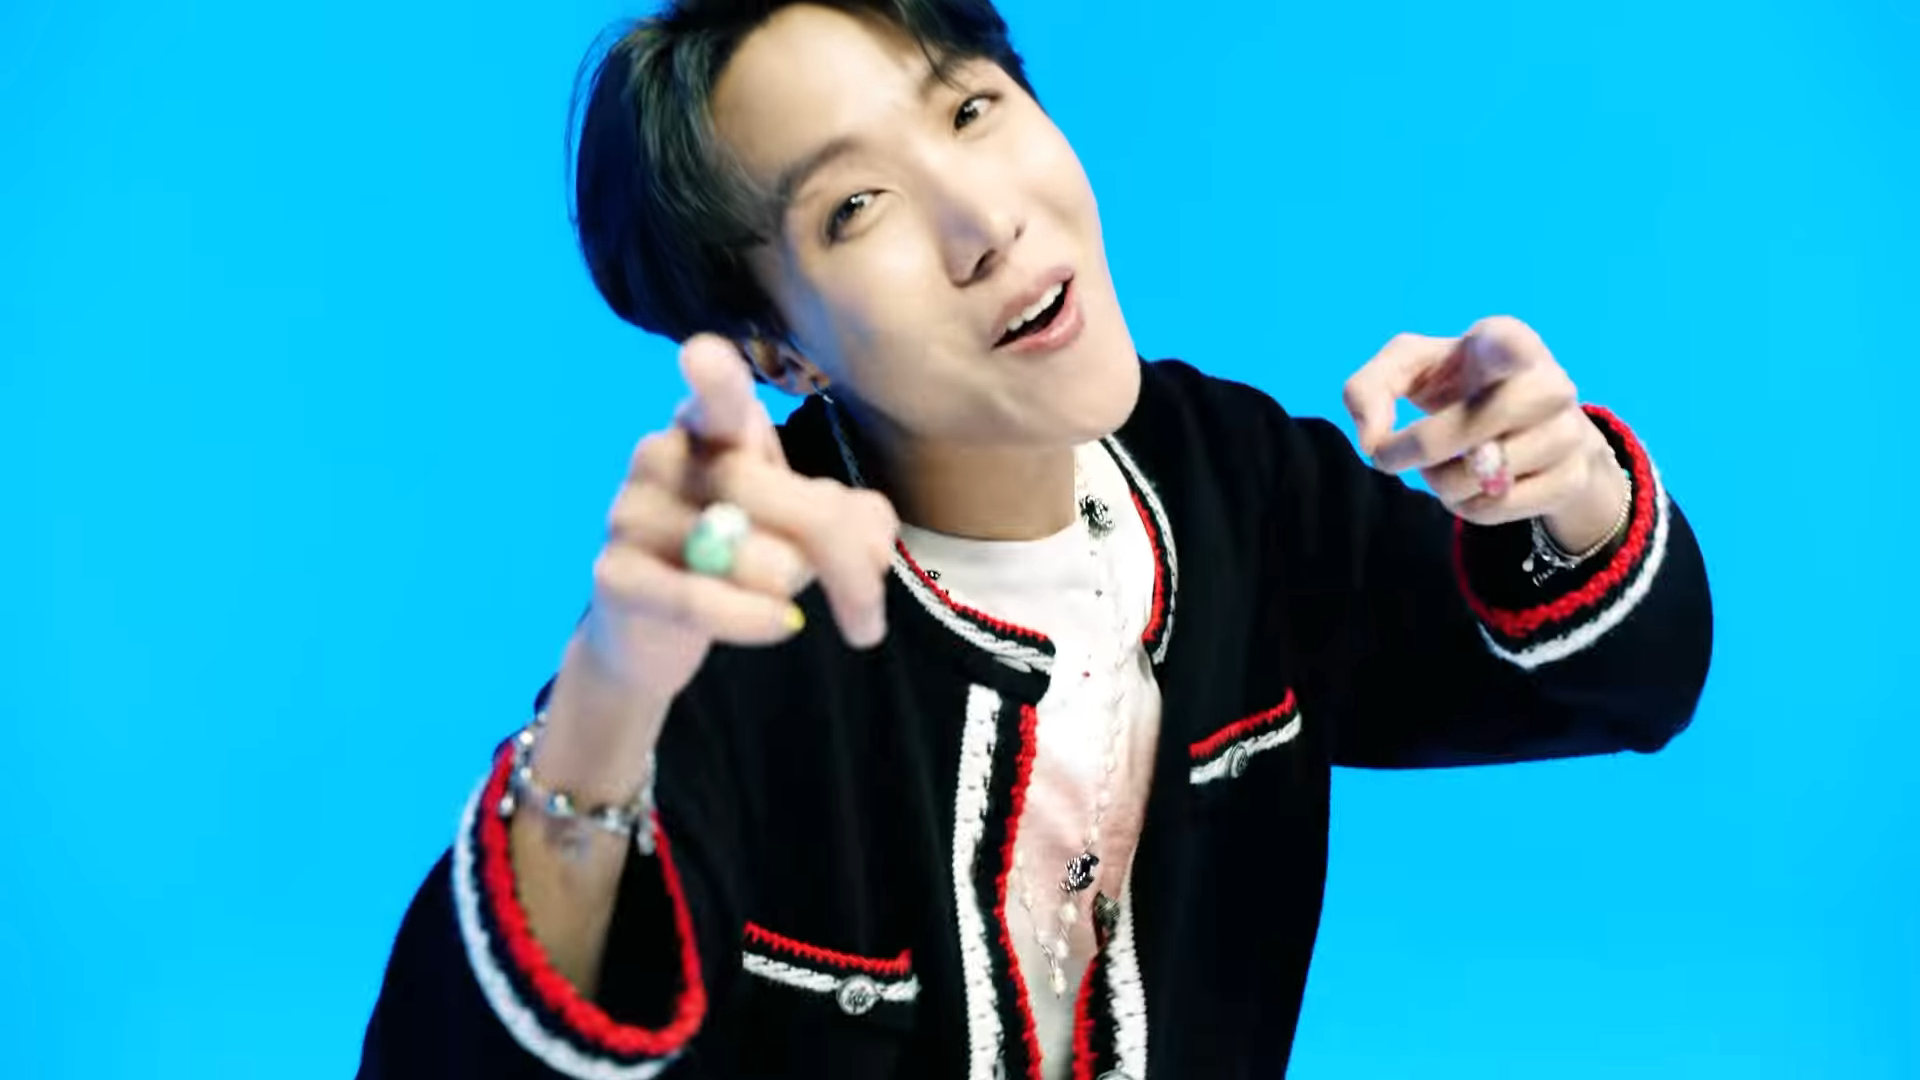 BTS Map Of The Soul 7 Outro Ego J hope 11